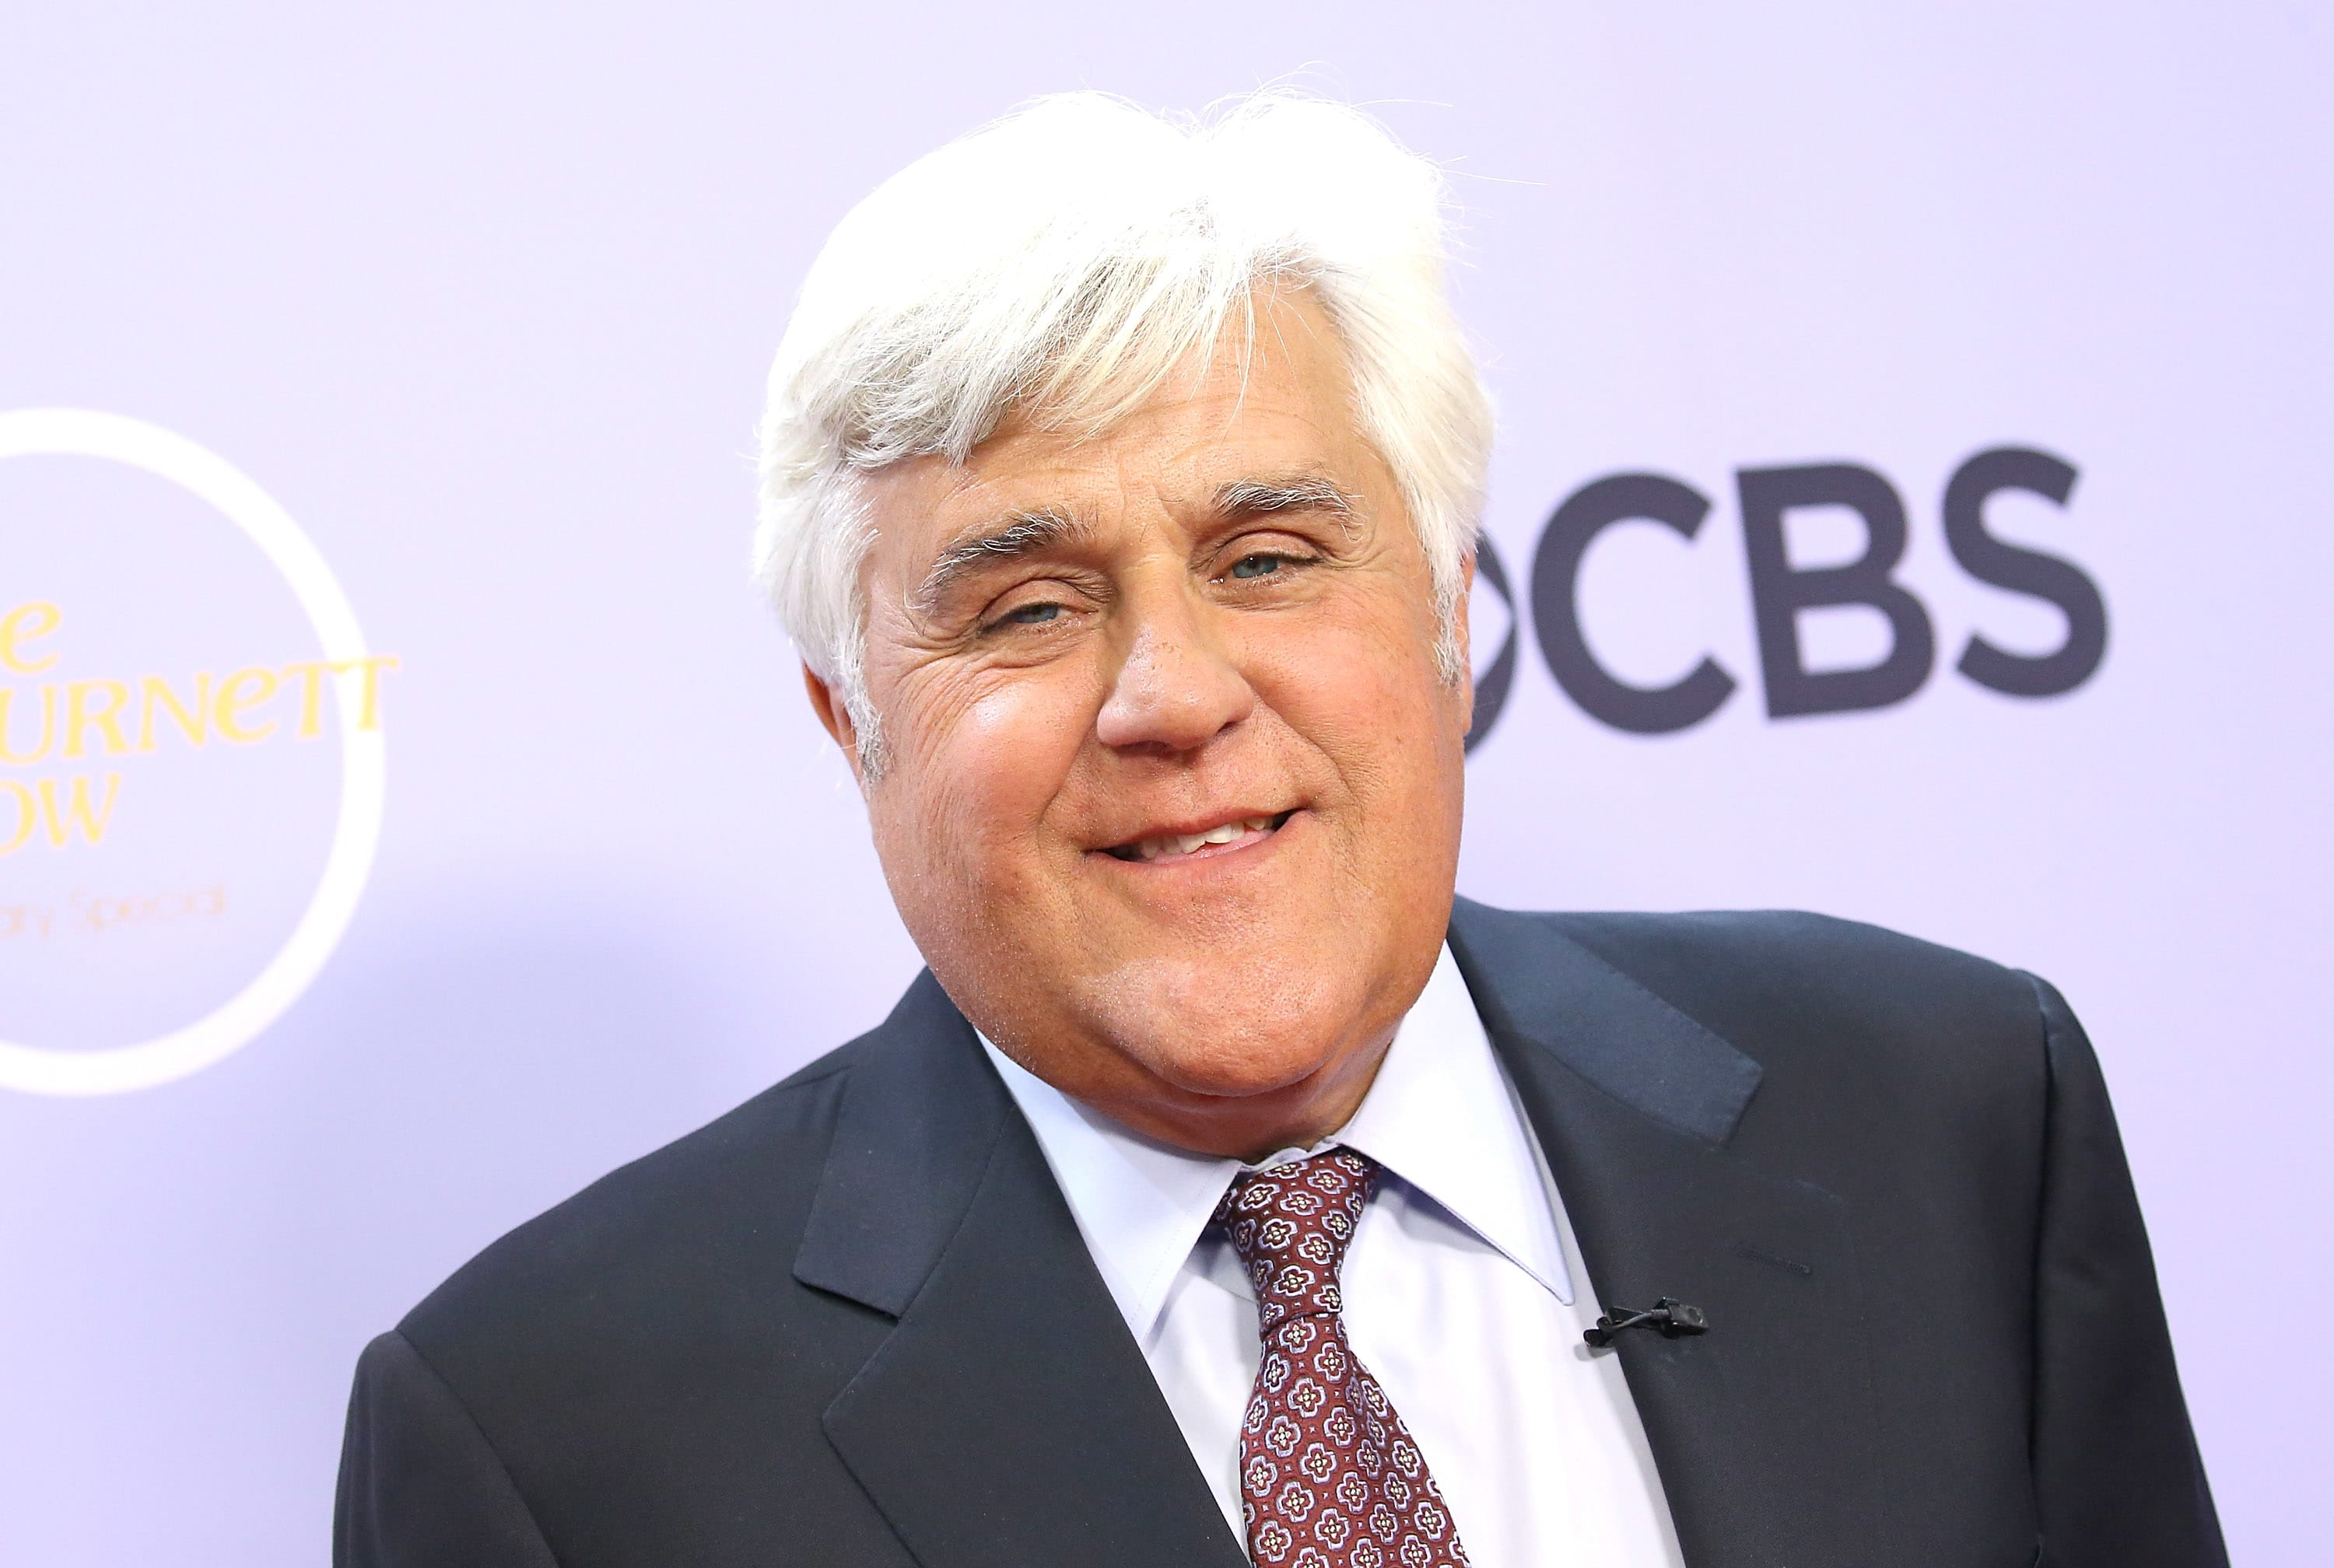 Jay Leno only cares about 1 thing when he hires new employees